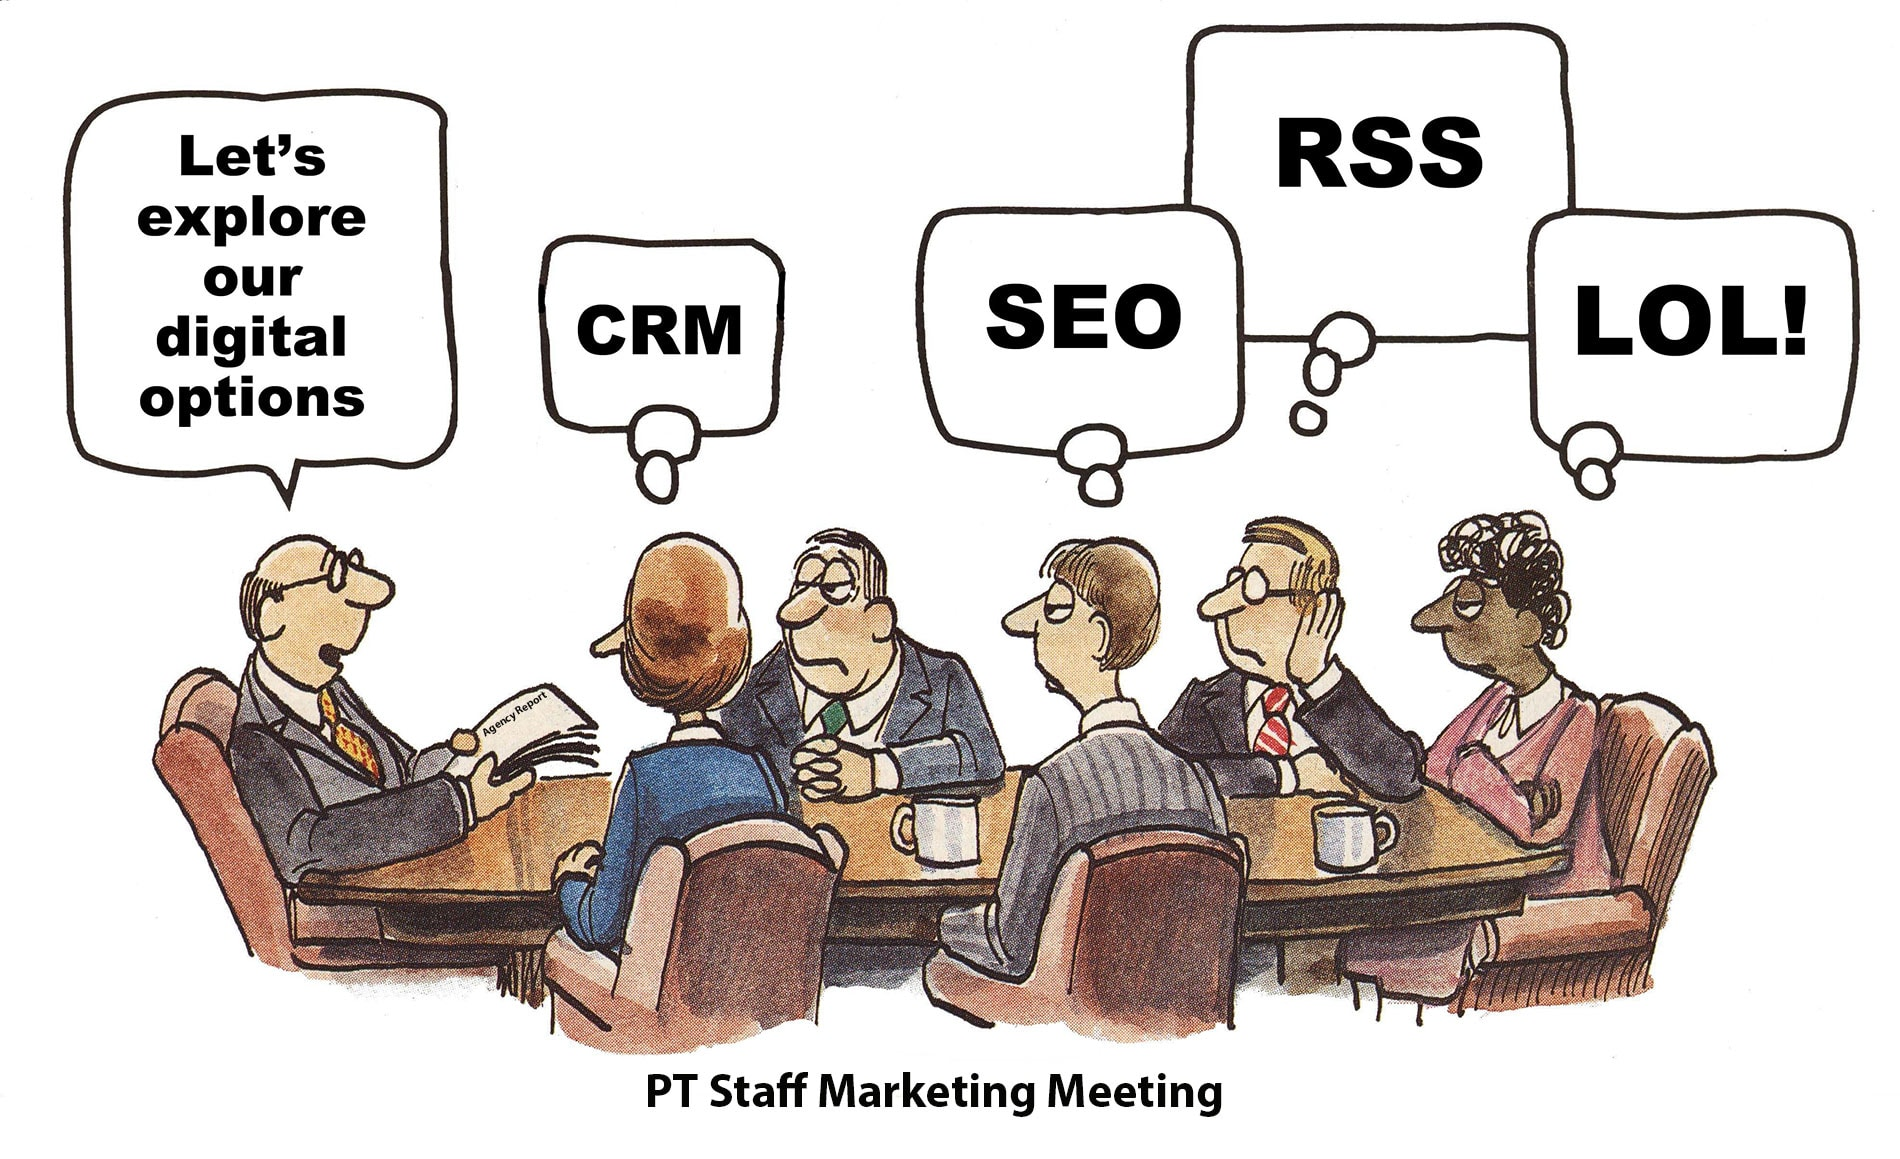 PT Website article feature image - marketing meeting cartoon